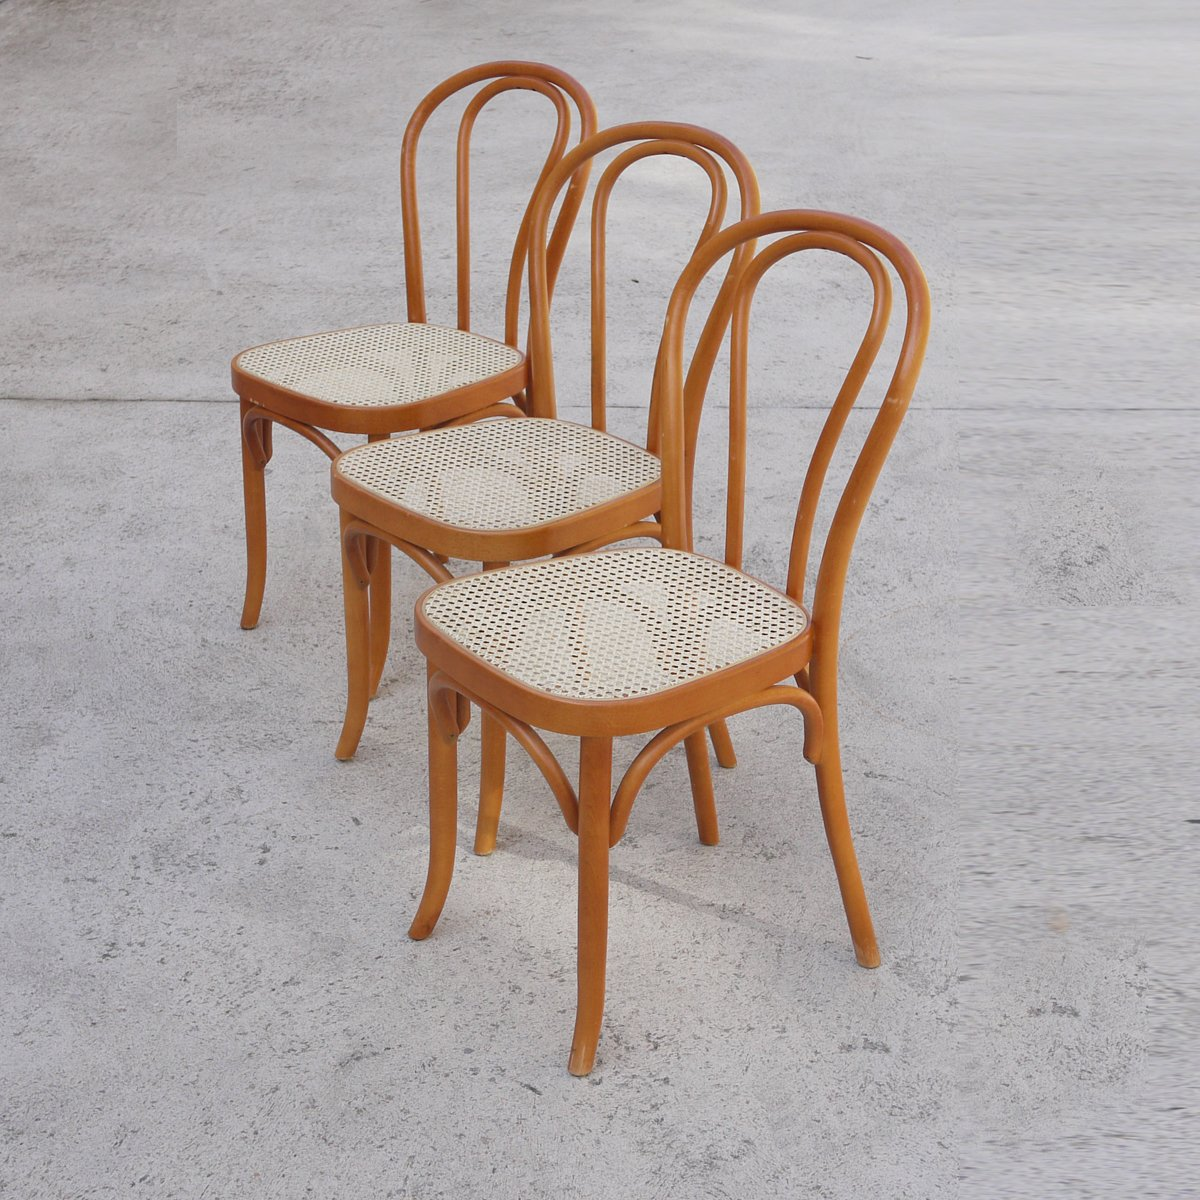 Astonishing Vintage Bentwood Rattan Dining Chairs Set Of 3 Ocoug Best Dining Table And Chair Ideas Images Ocougorg